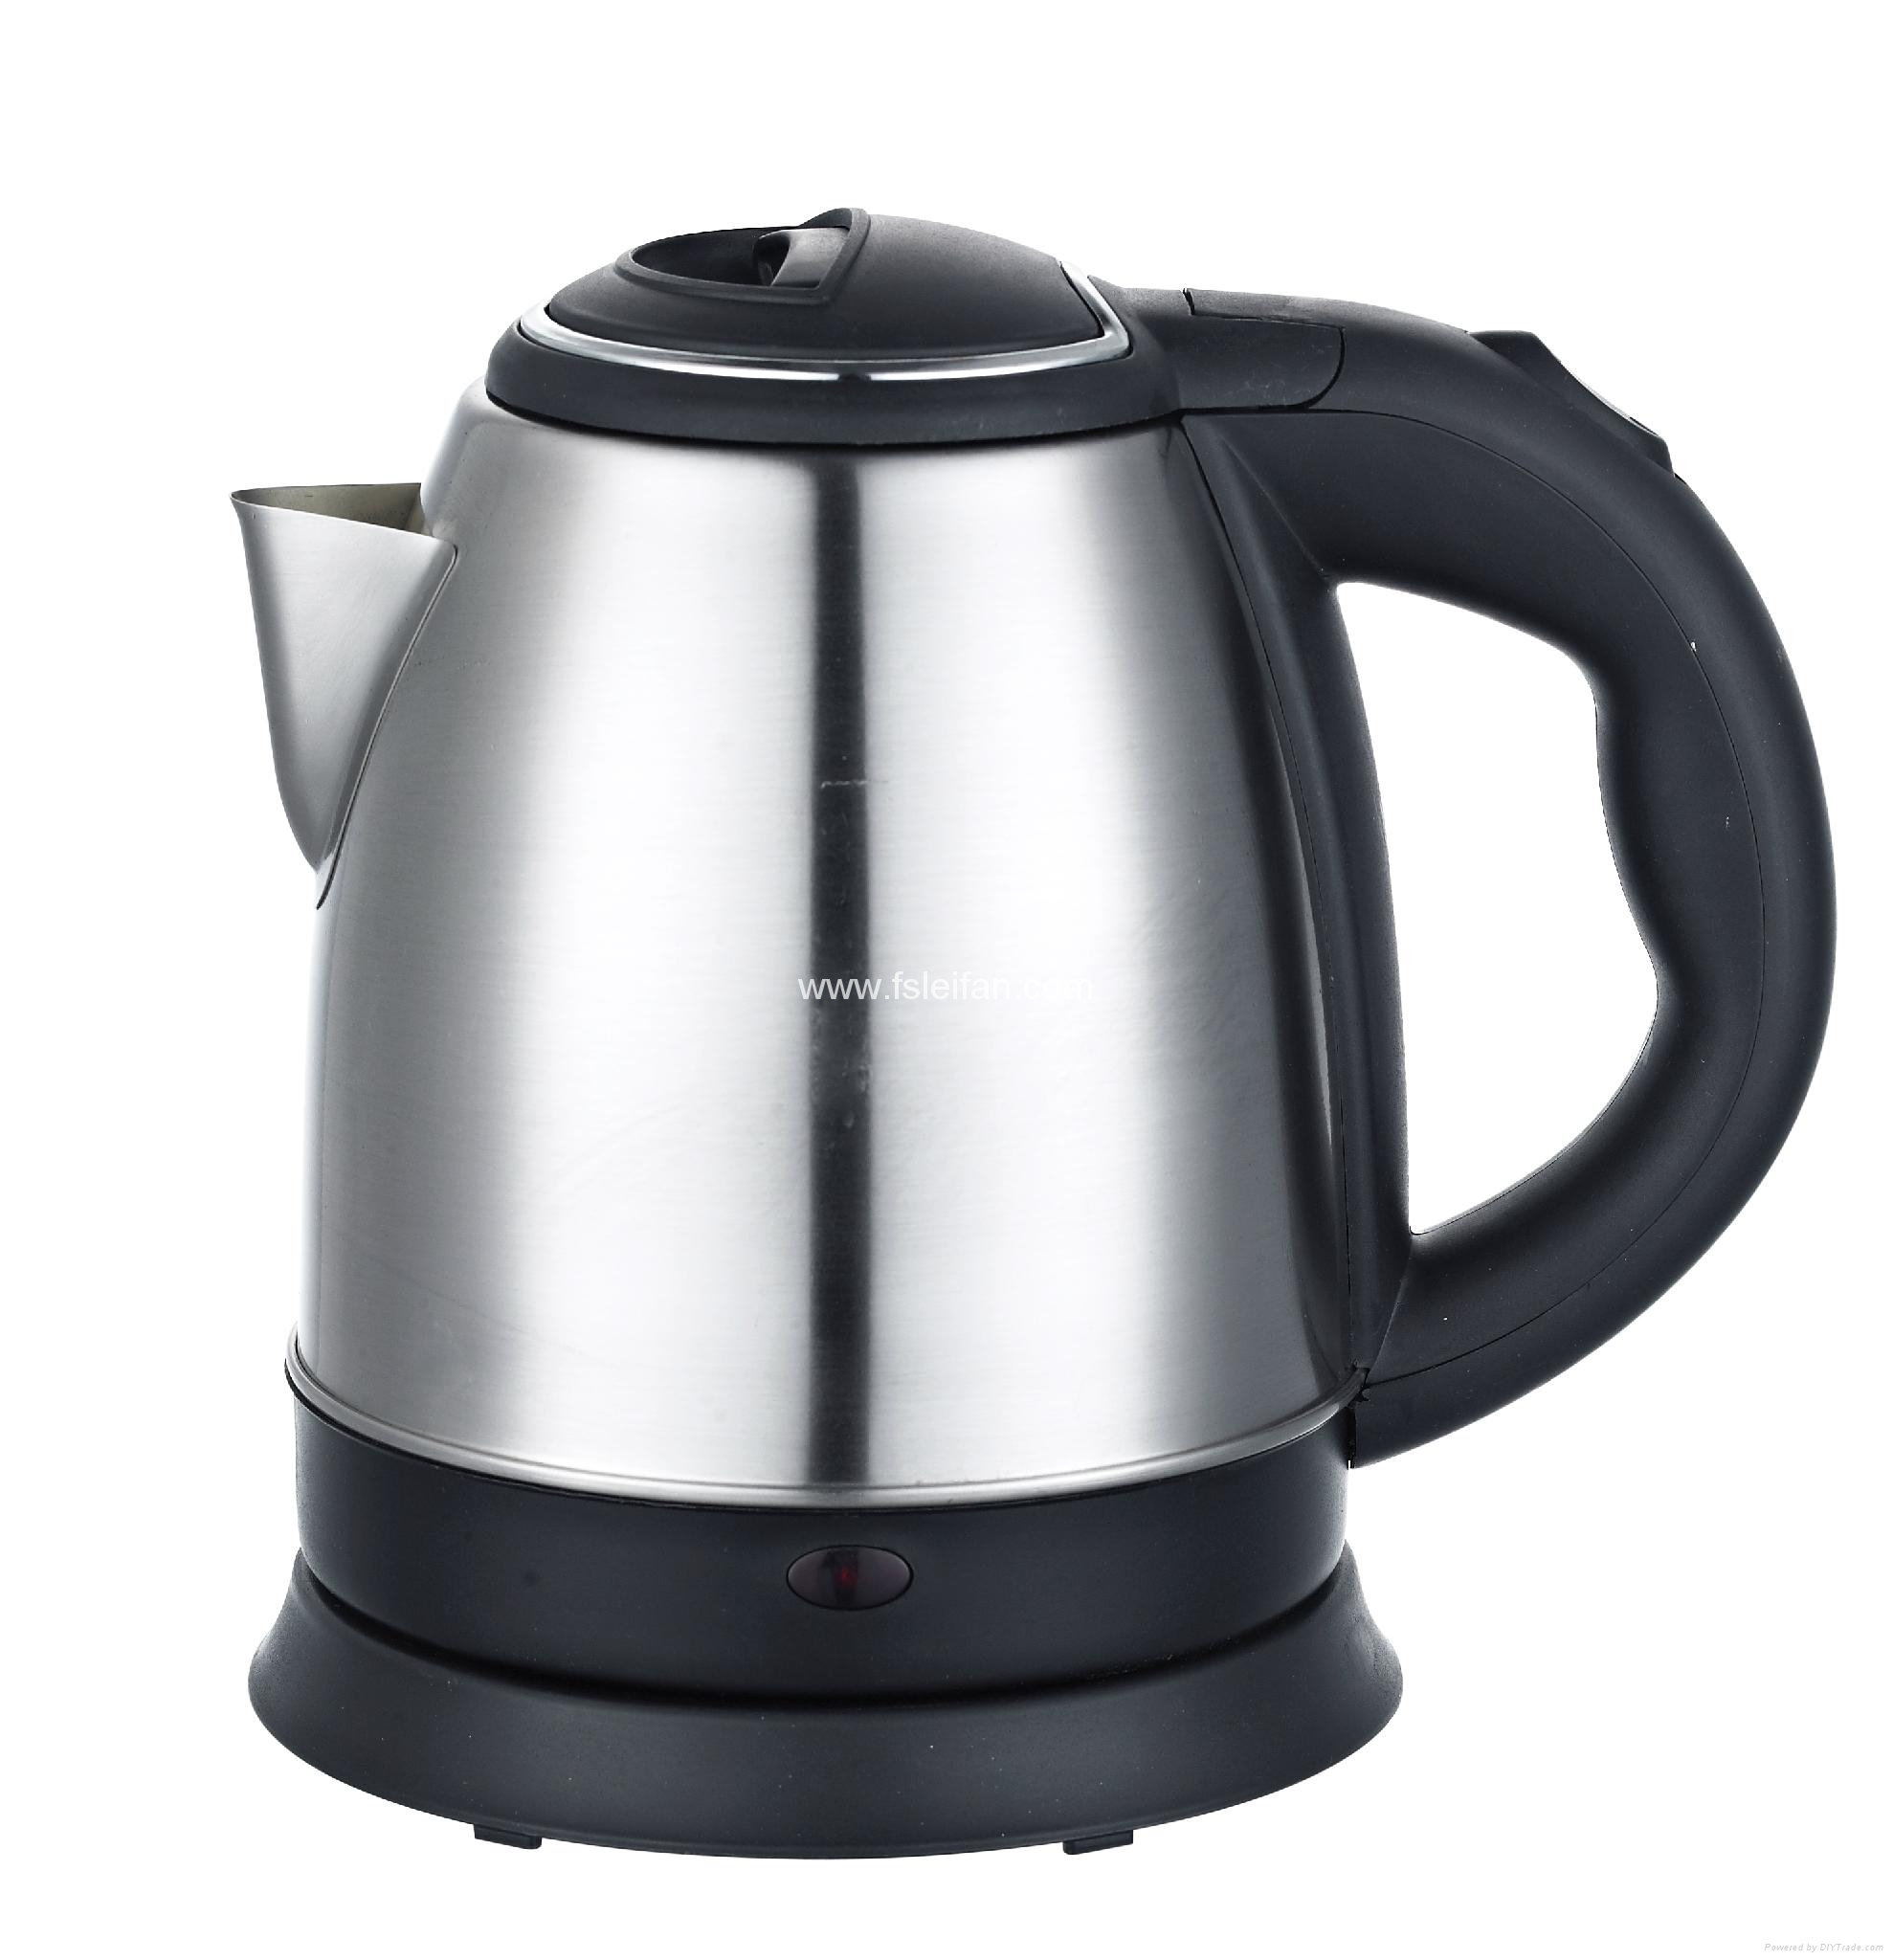 electric kettle home appliance stainless steel tea kettle lf 7009 leifan china manufacturer. Black Bedroom Furniture Sets. Home Design Ideas